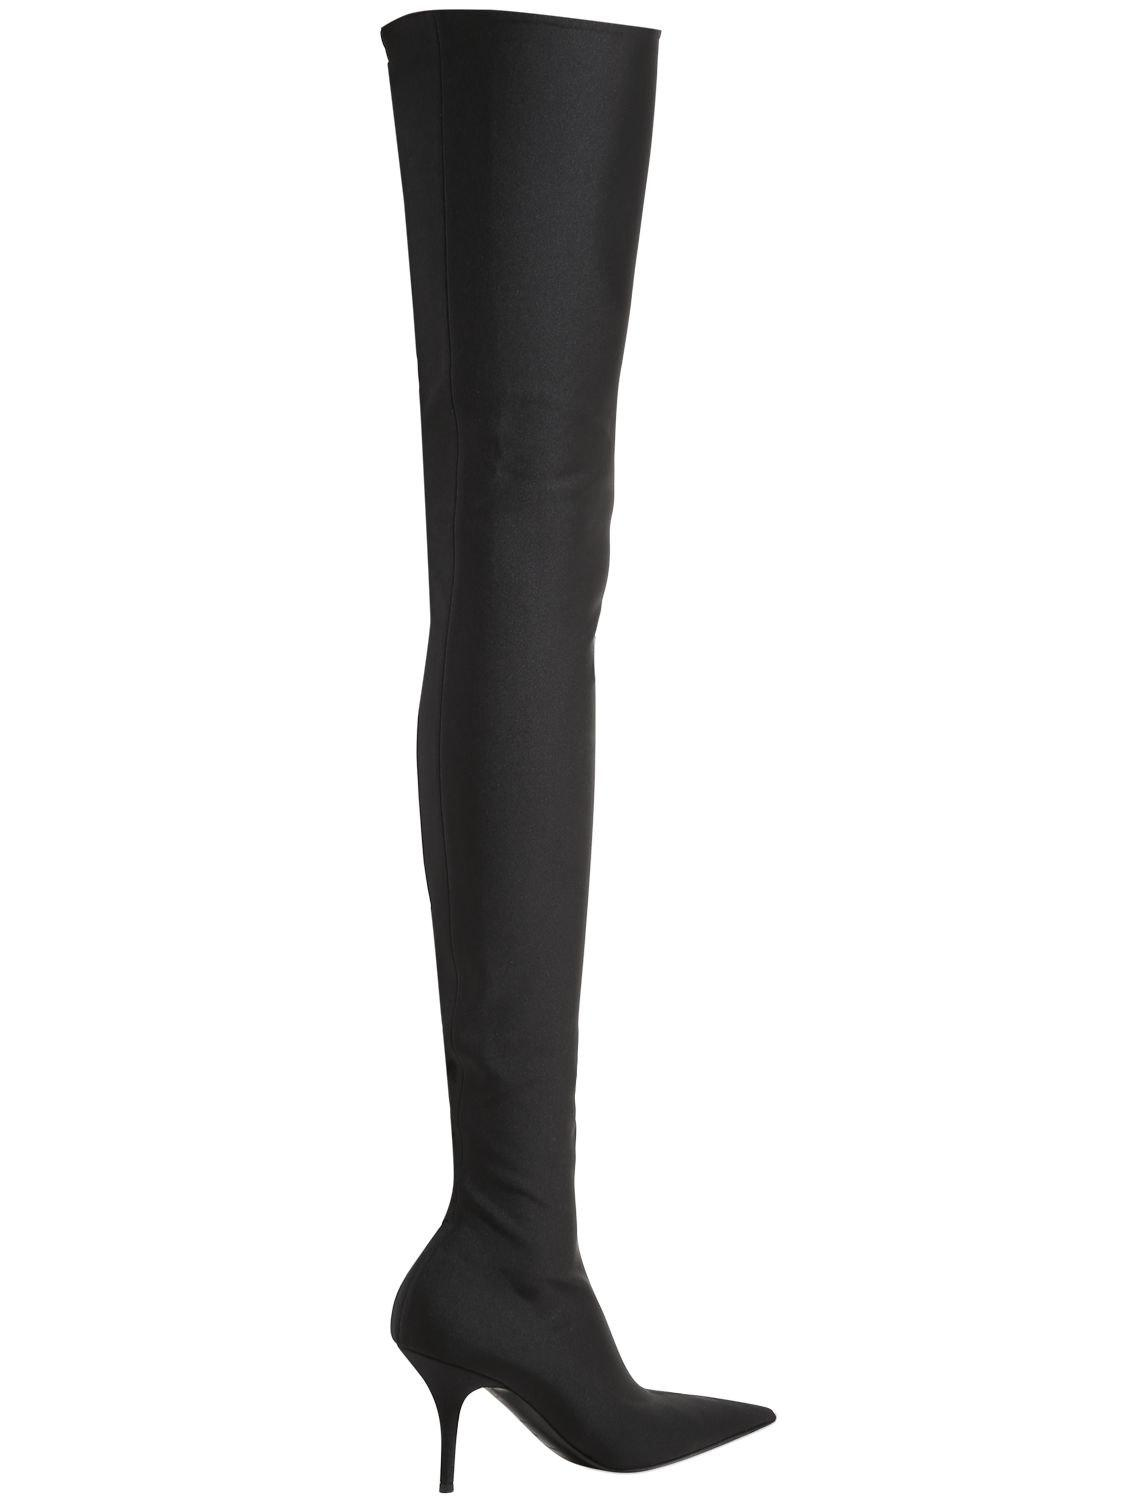 Balenciaga80MM KNIFE SPANDEX OVER THE KNEE BOOTS gGVgQL7w2T